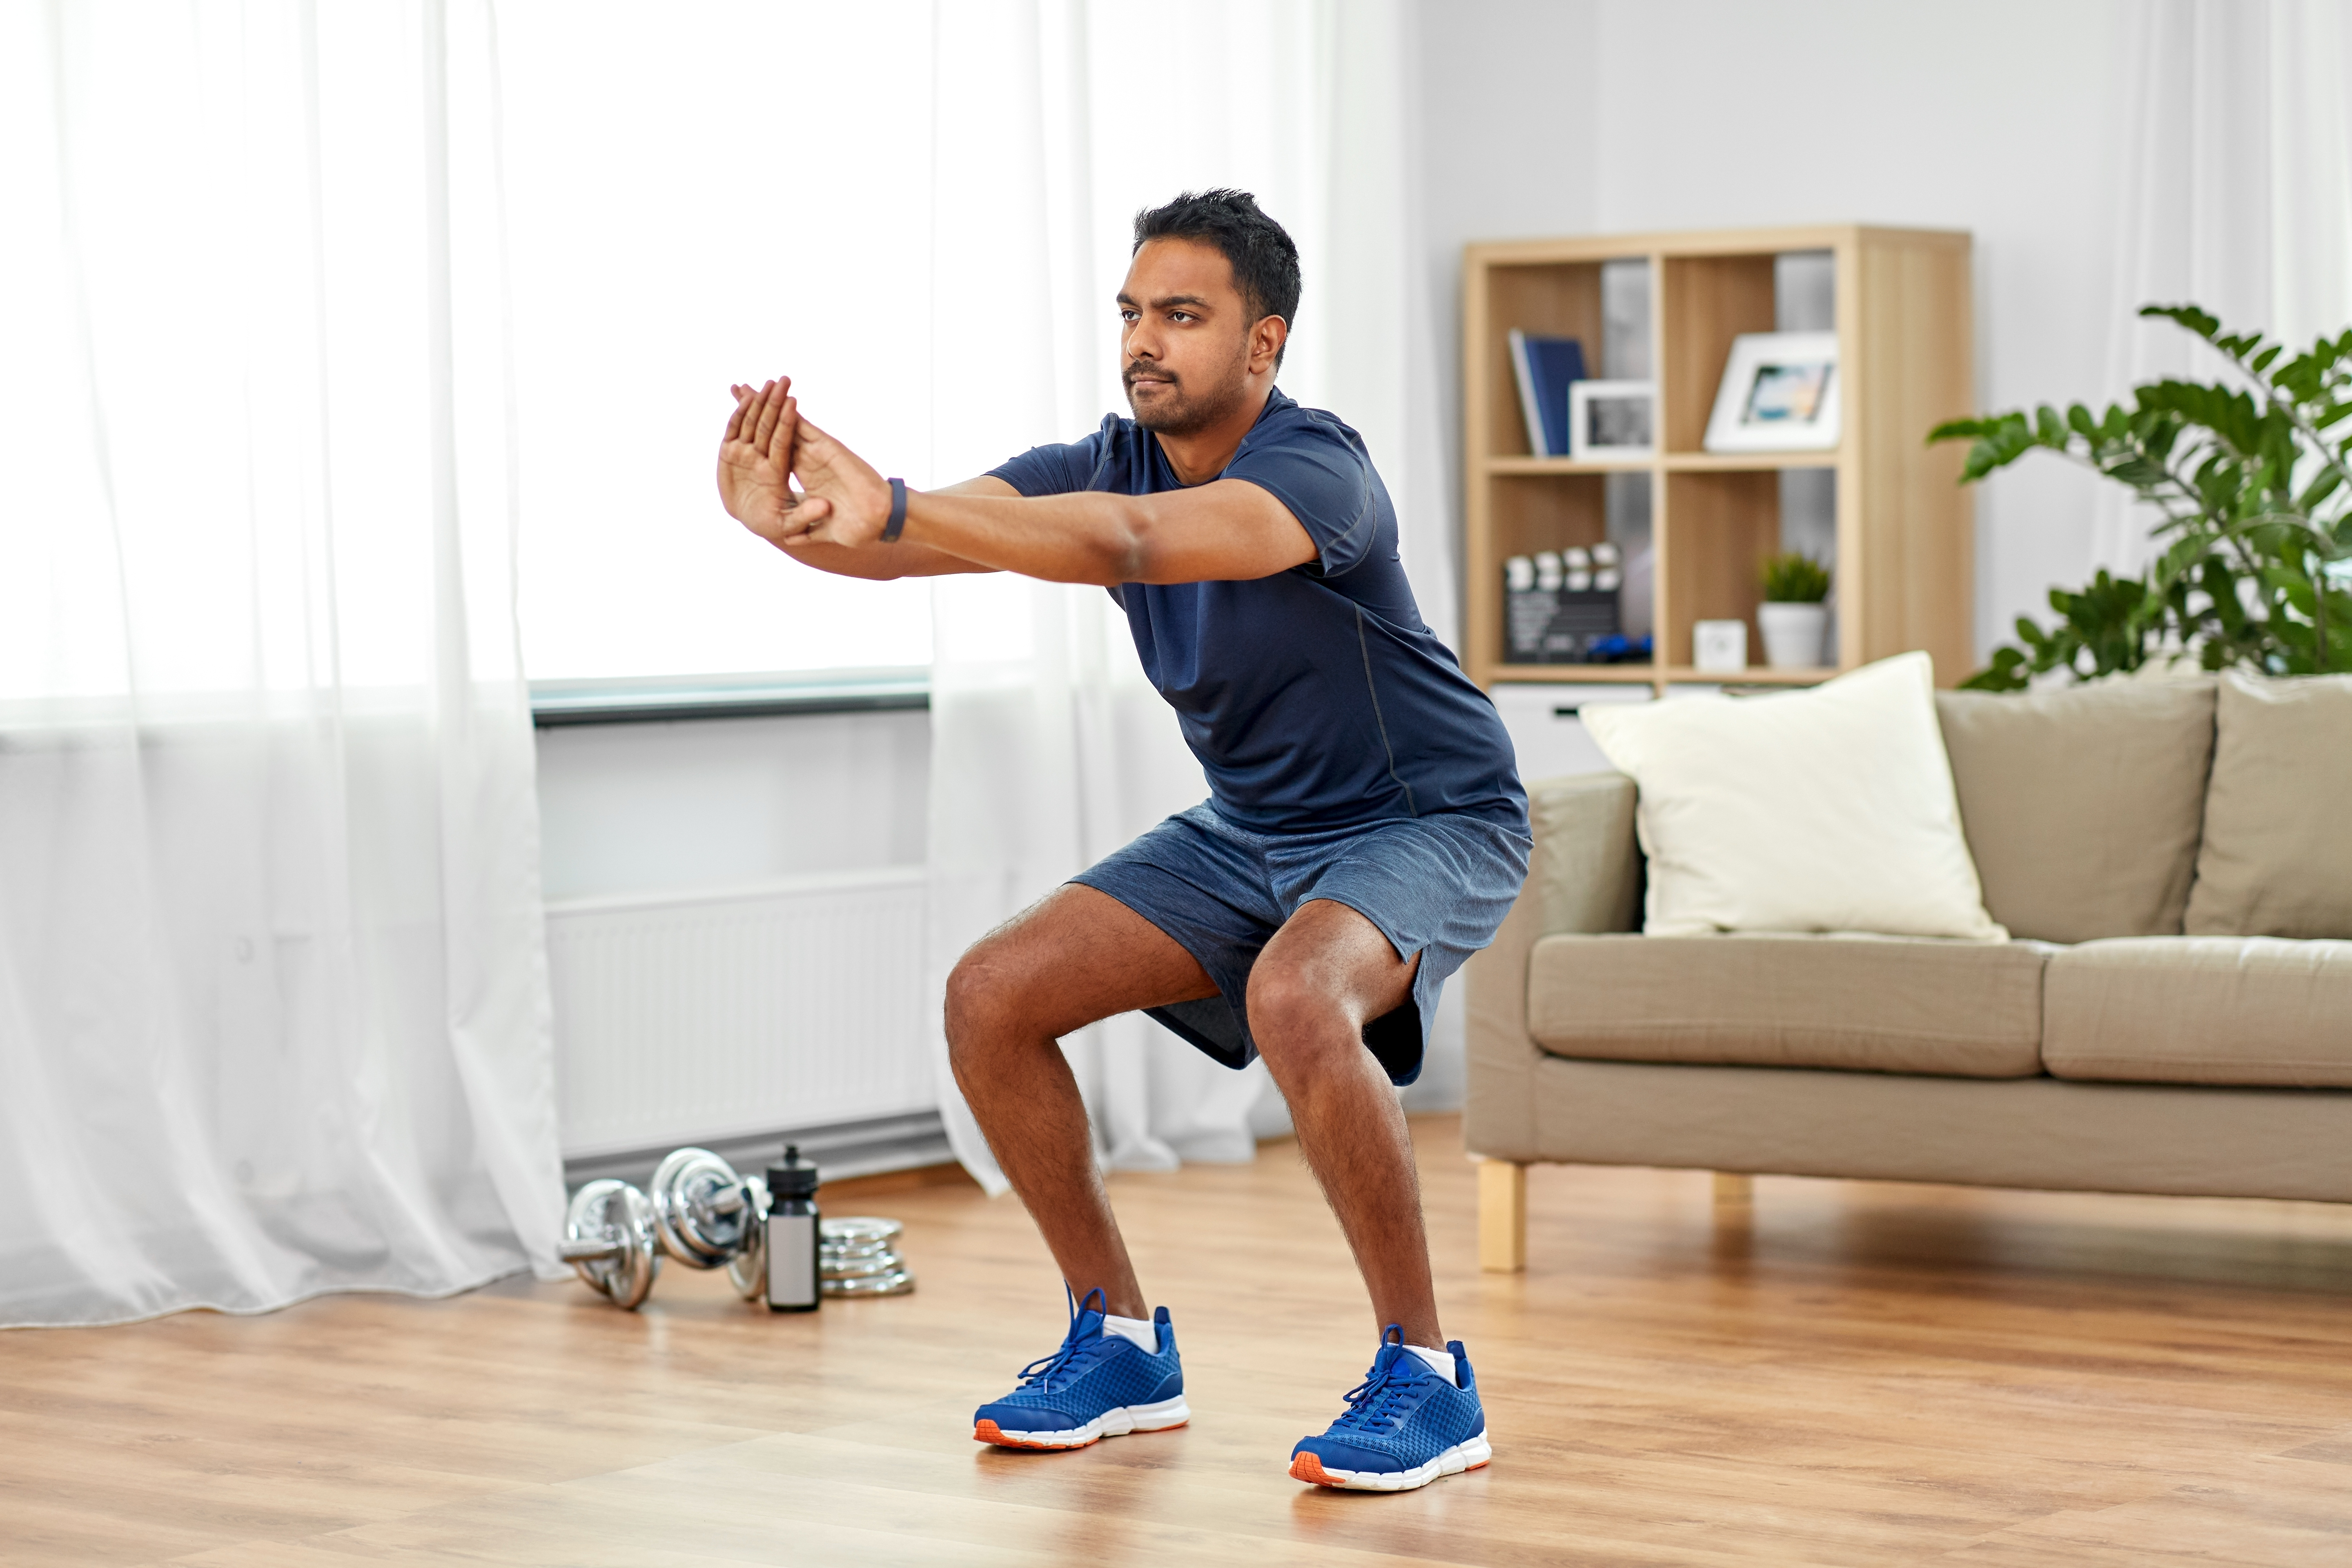 Researchers from the Mayo Clinic in Minnesota and McMaster University in Canada created their own version of a well-regarded body weight workout. These are exercises such as jumping jacks, stair climbing, planks and squats (pictured).